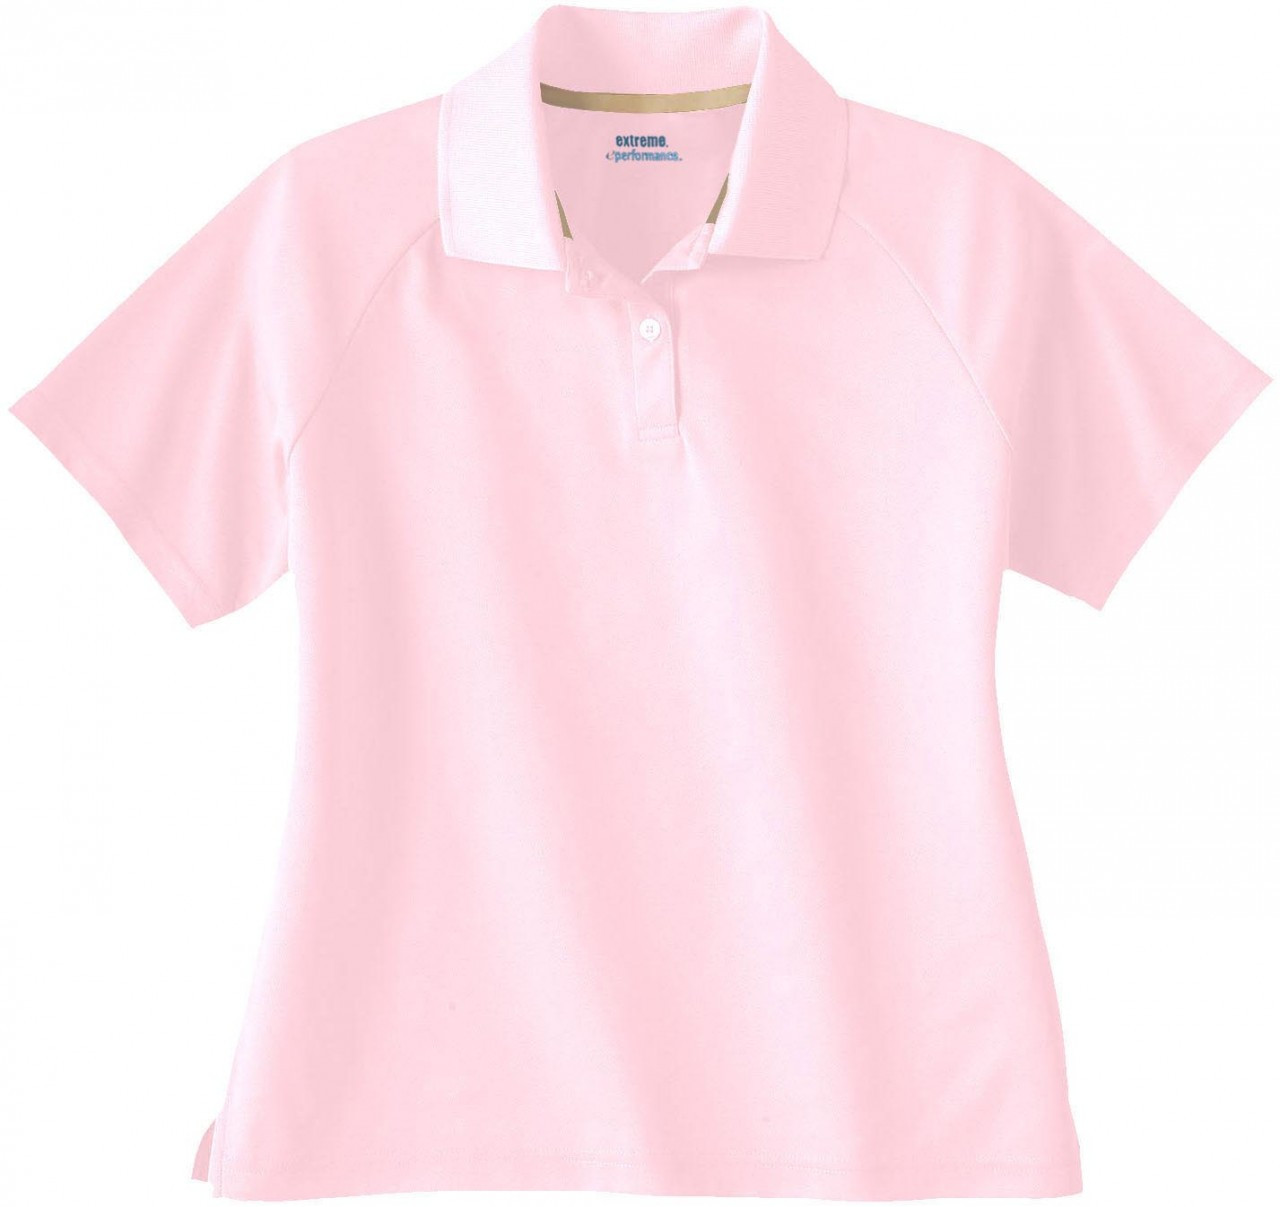 Powder Pink - 75046 Extreme Ladies' Eperformance Pique Polo Shirt | BlankClothing.ca